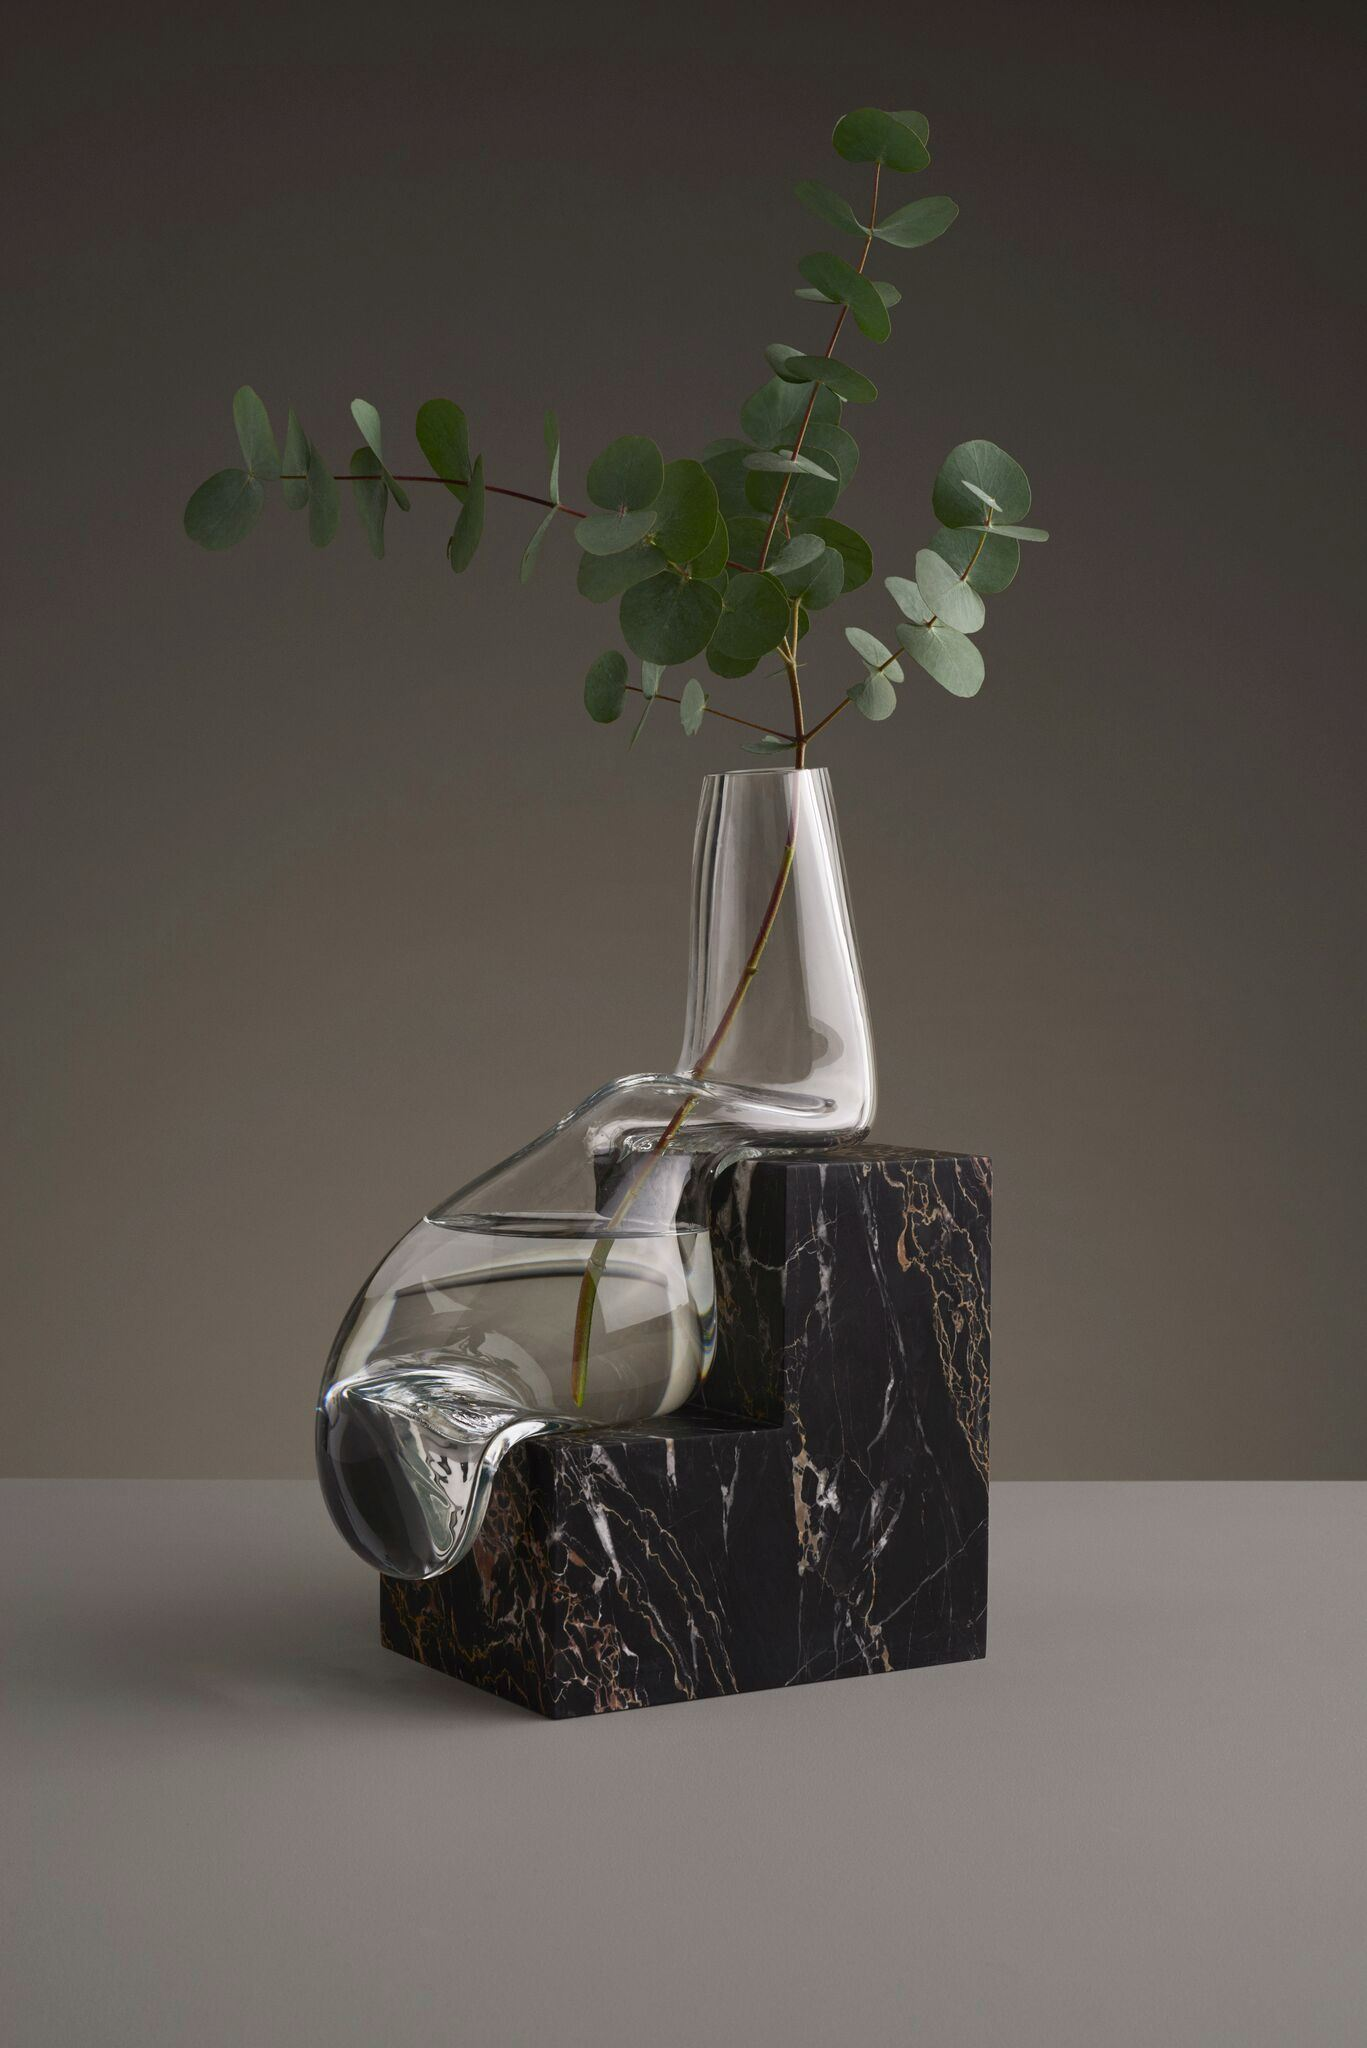 Melted vase on a black base